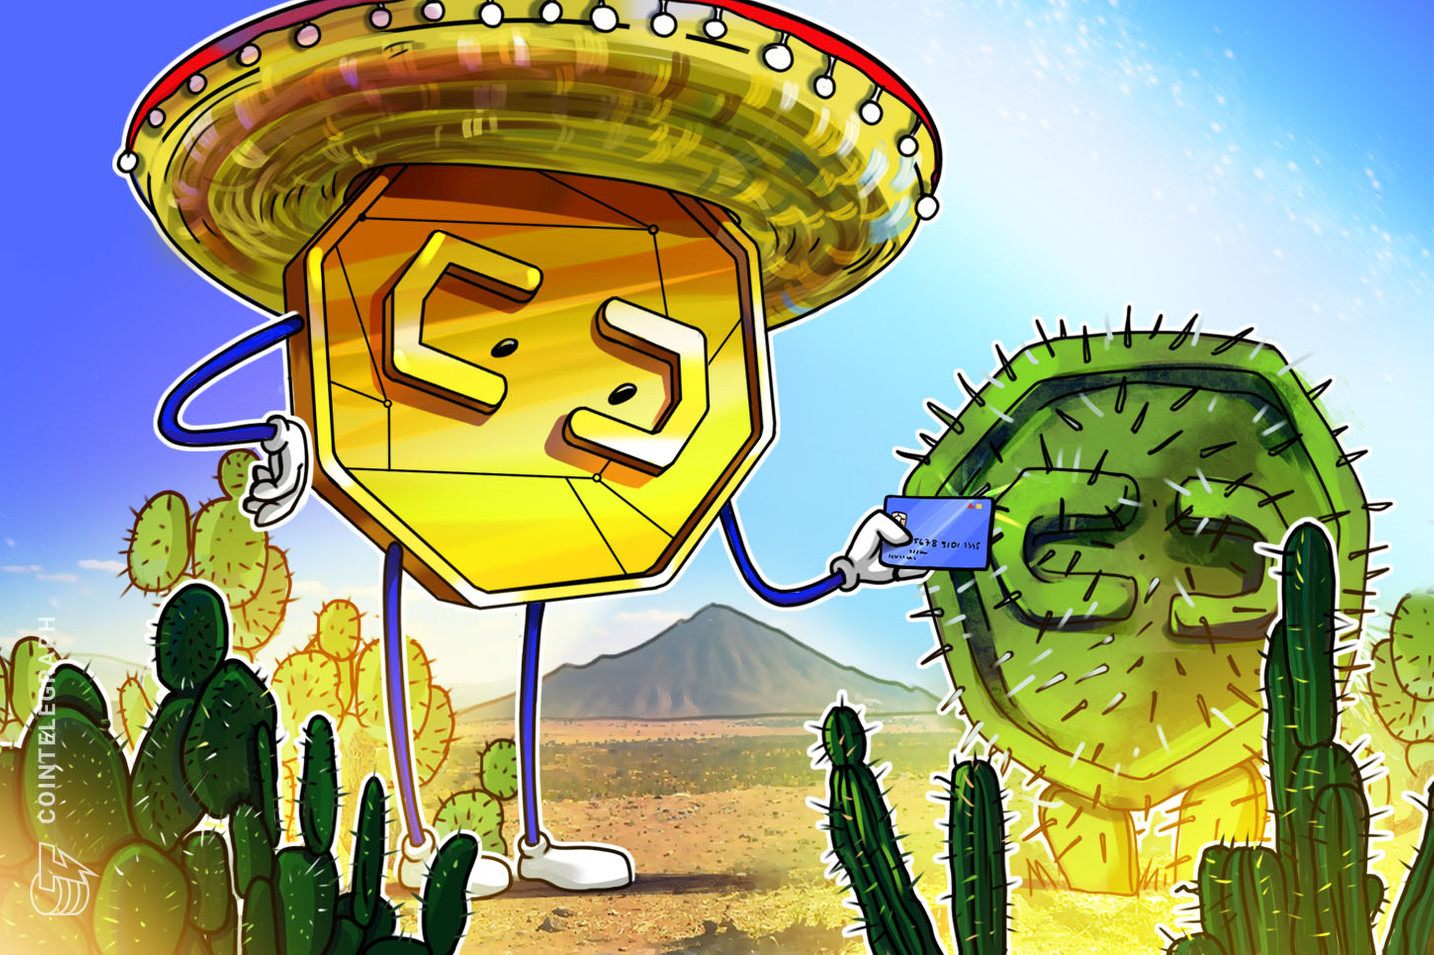 Spanish neobank jointly launches debit card with Paxful